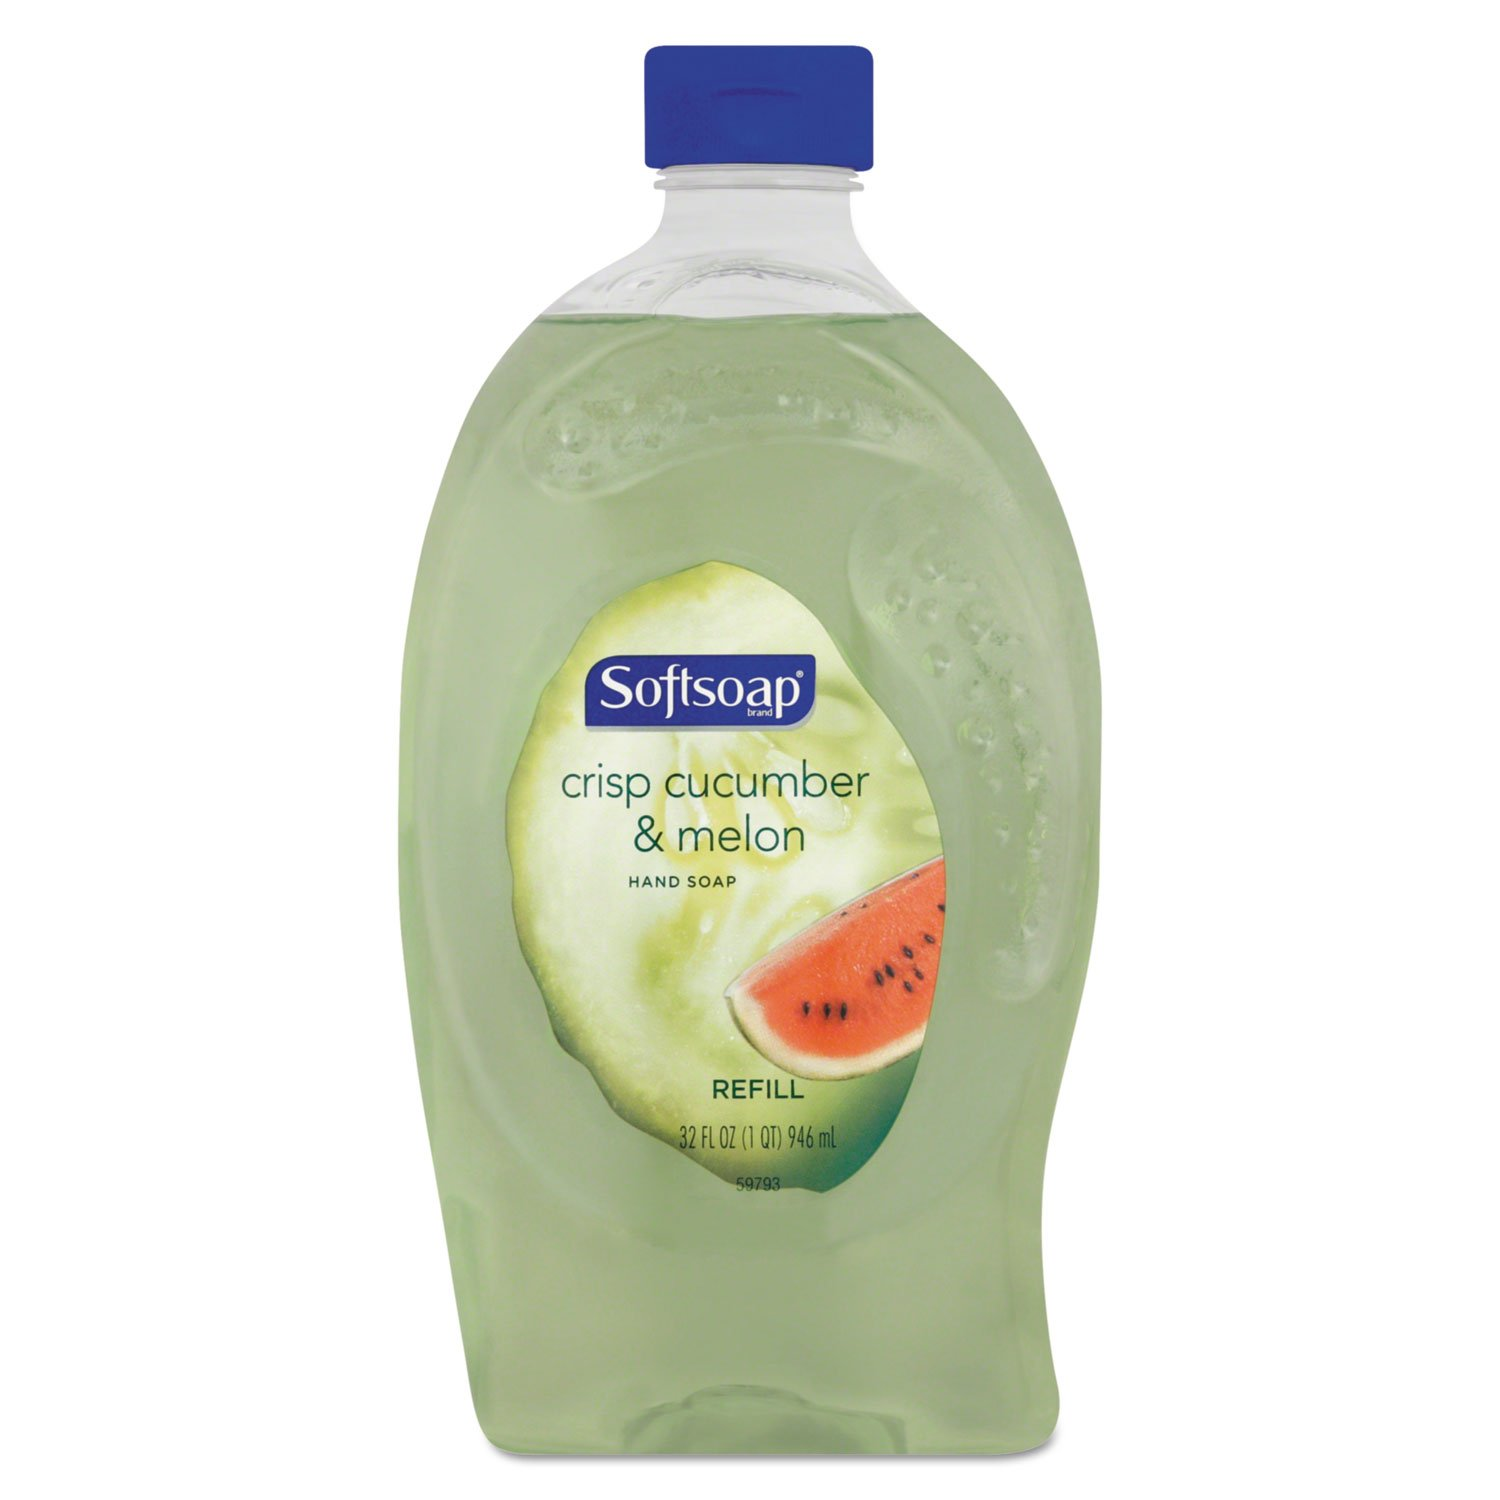 Softsoap Crisp Cucumber & Melon Liquid Hand Soap Refill 32 Ounce